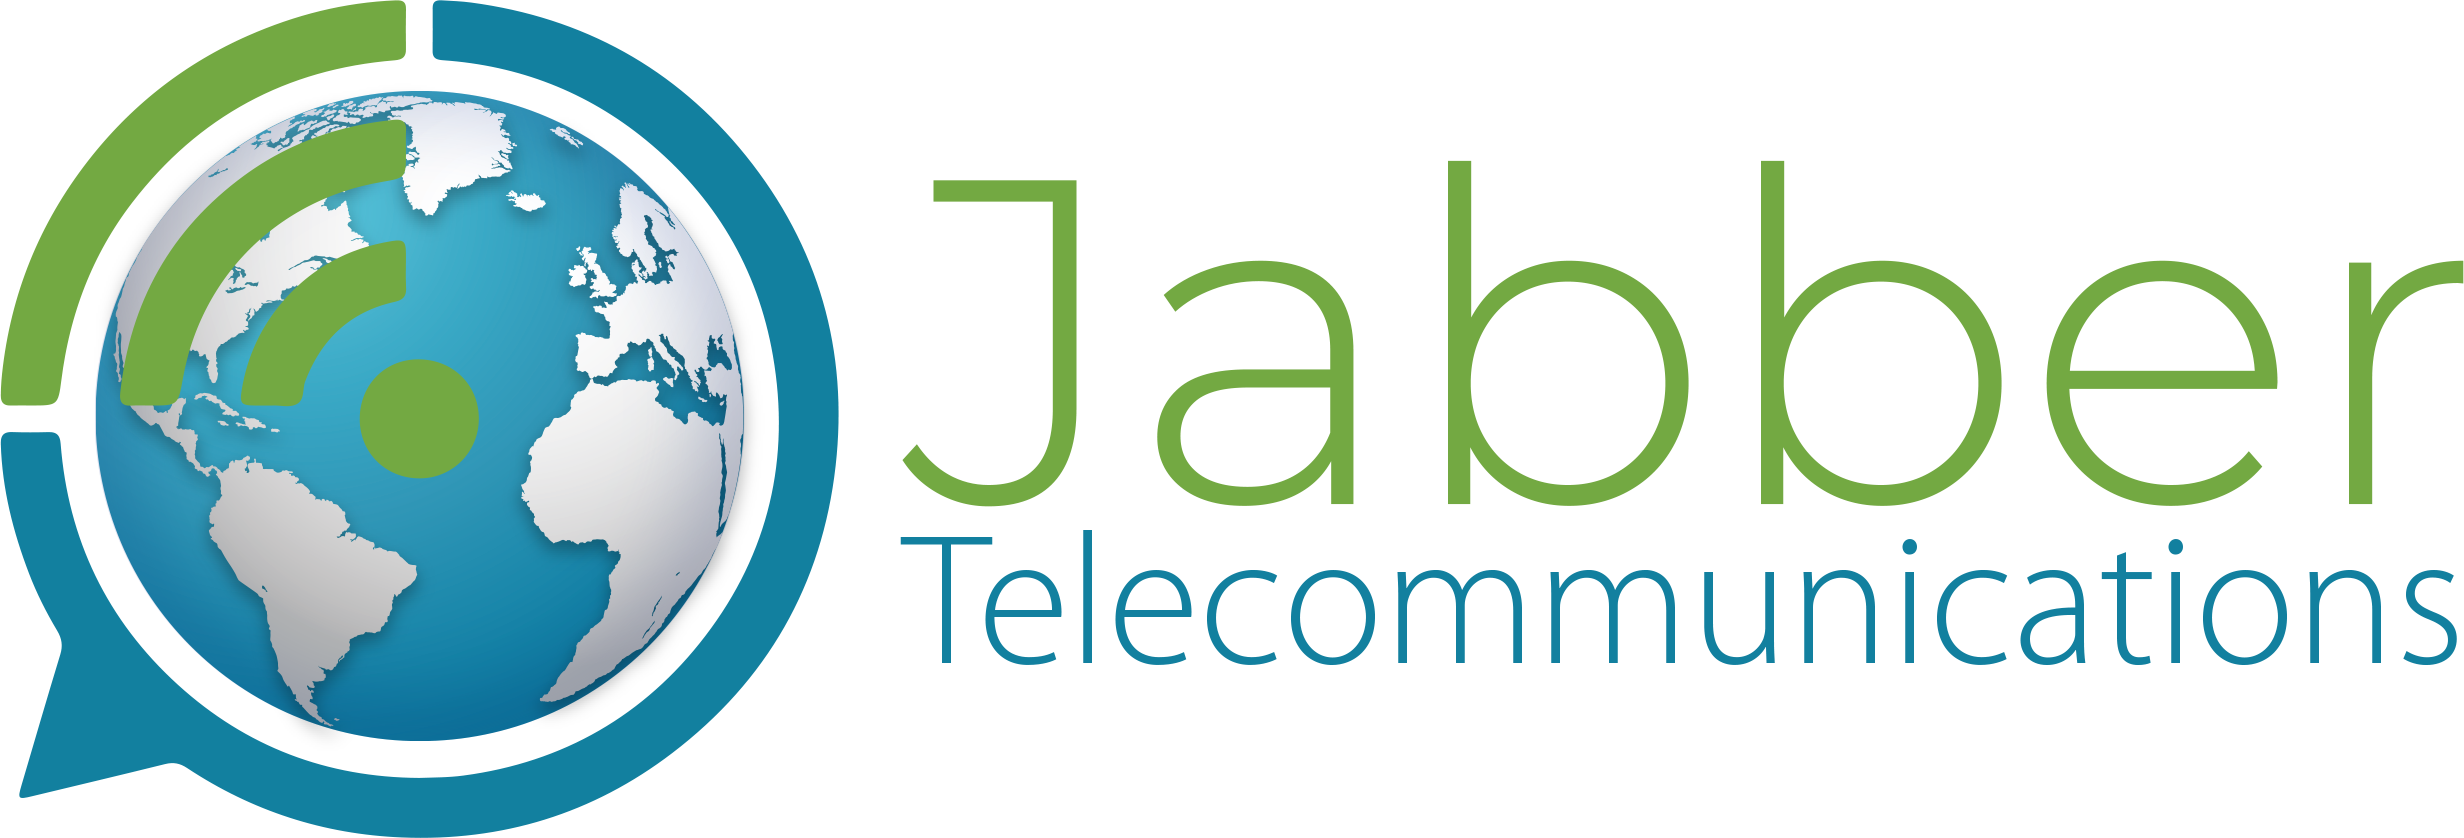 JabberTel - Business Phone Service Provider with Cloud Based Technology